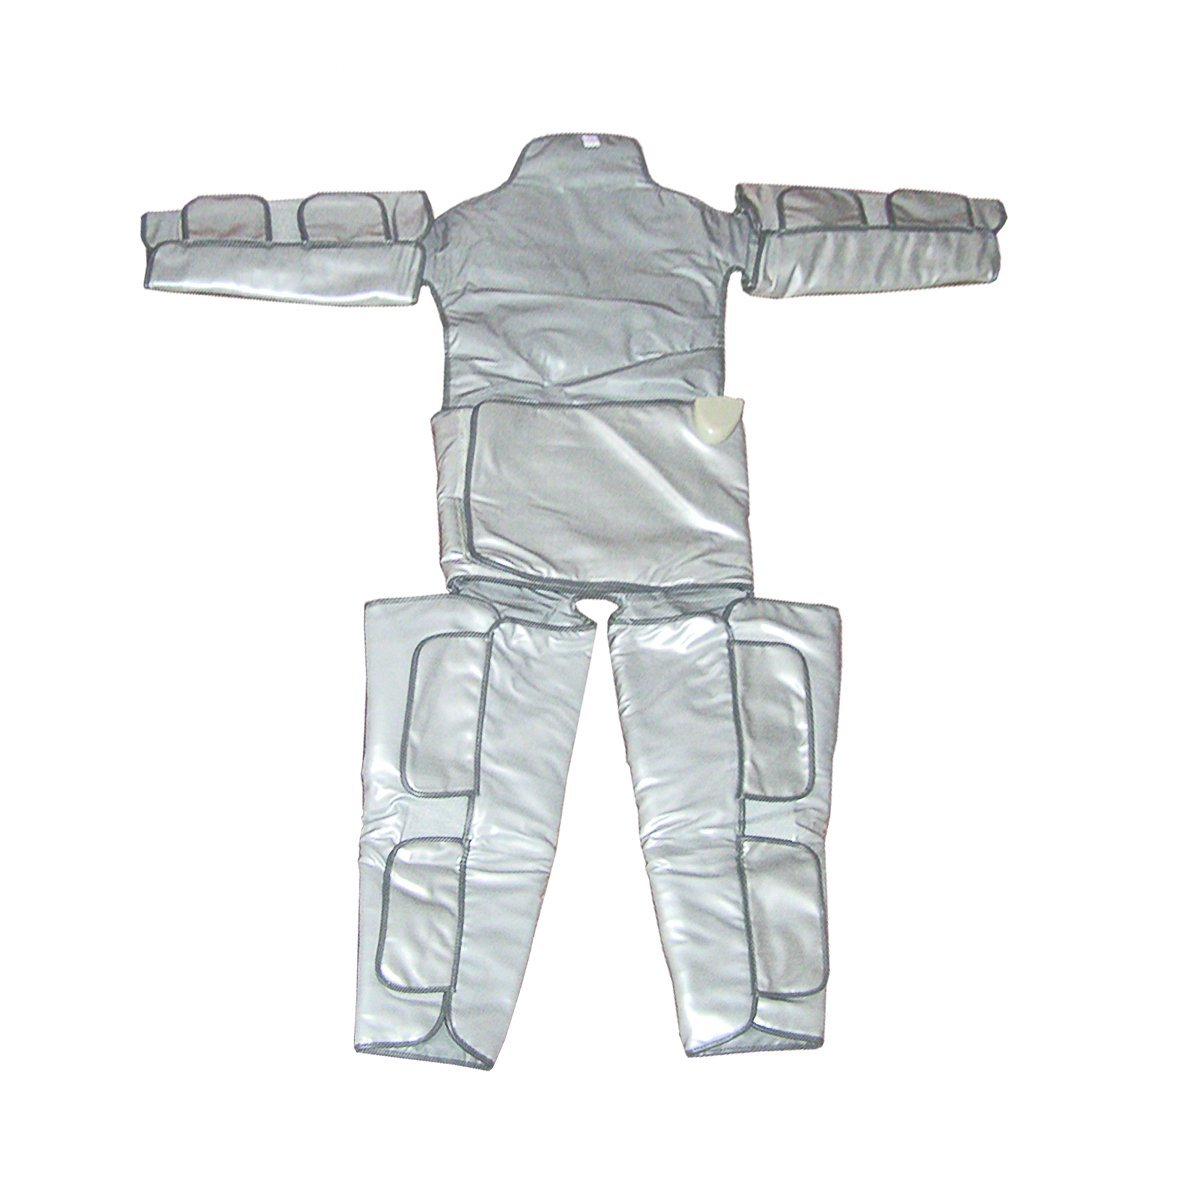 Far-Infrared Slimming Suit. Anti Cellulite and Weight Loss Body Wrap